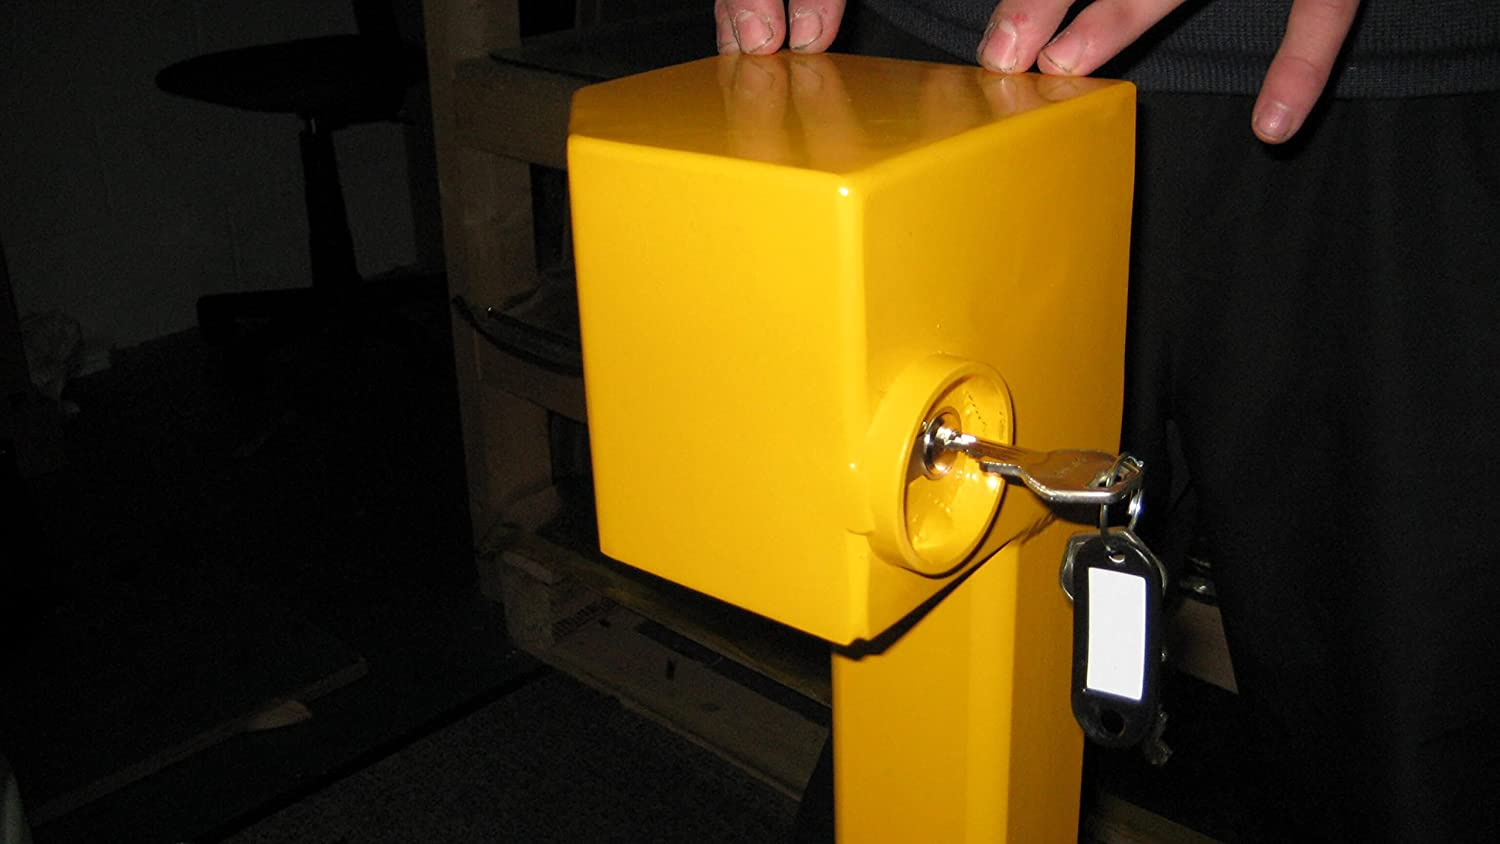 Centinel Driveway Security post C1